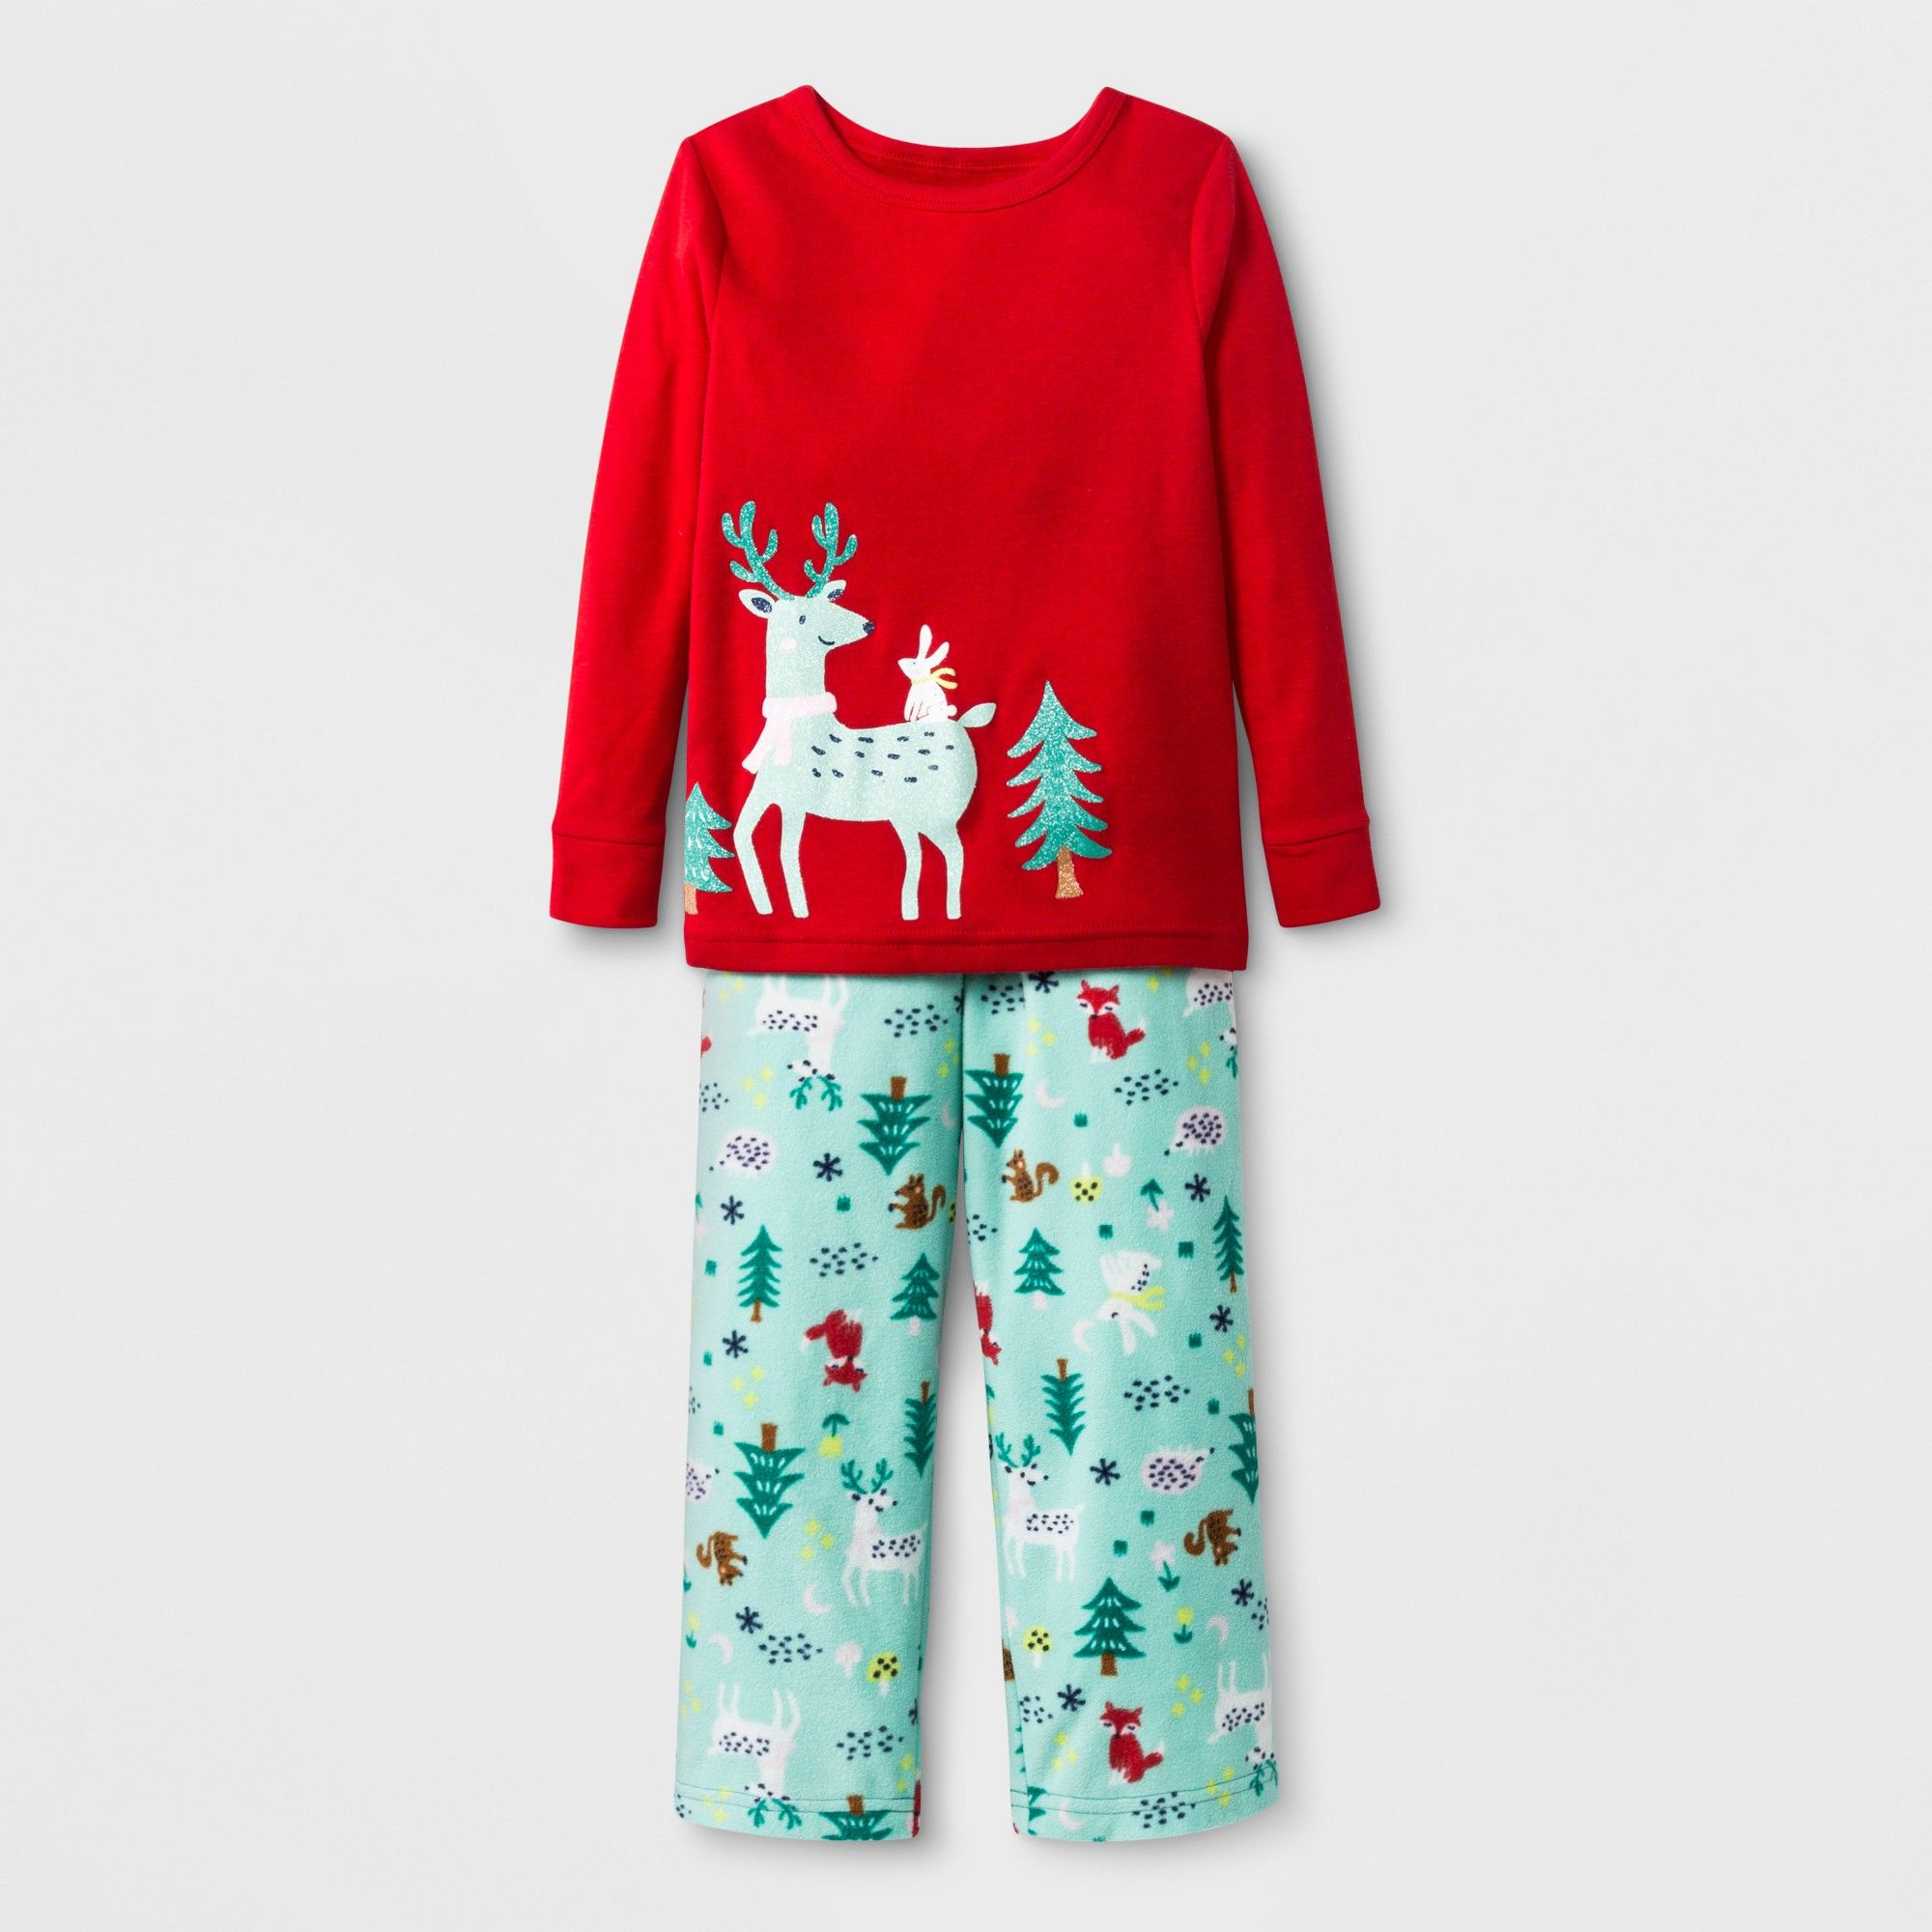 629cee400 Baby s 2pc Reindeer Pajama Set - Cat   Jack Red 18M